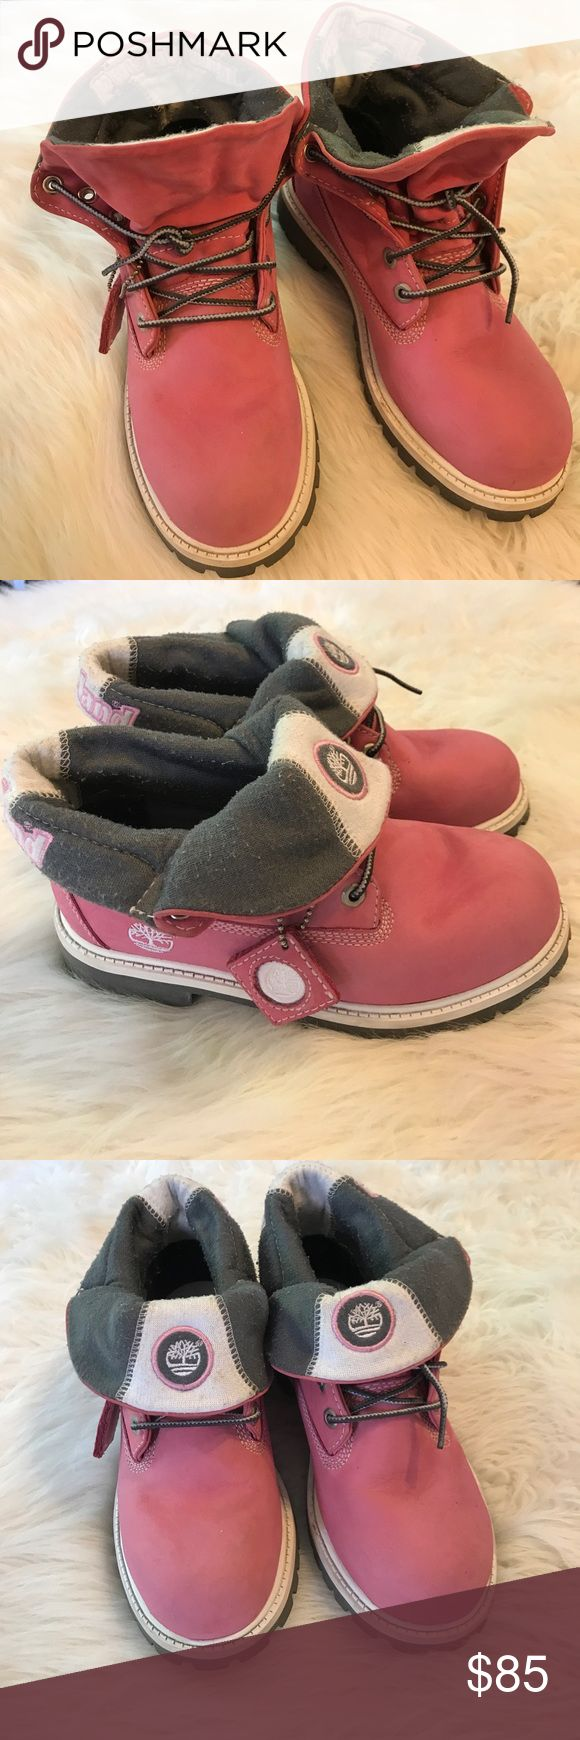 Timberland pink boots with folding top Iike new barley worn youth 5.5 fits like 6 women Timberland Shoes Rain & Snow Boots #outdoorshoes